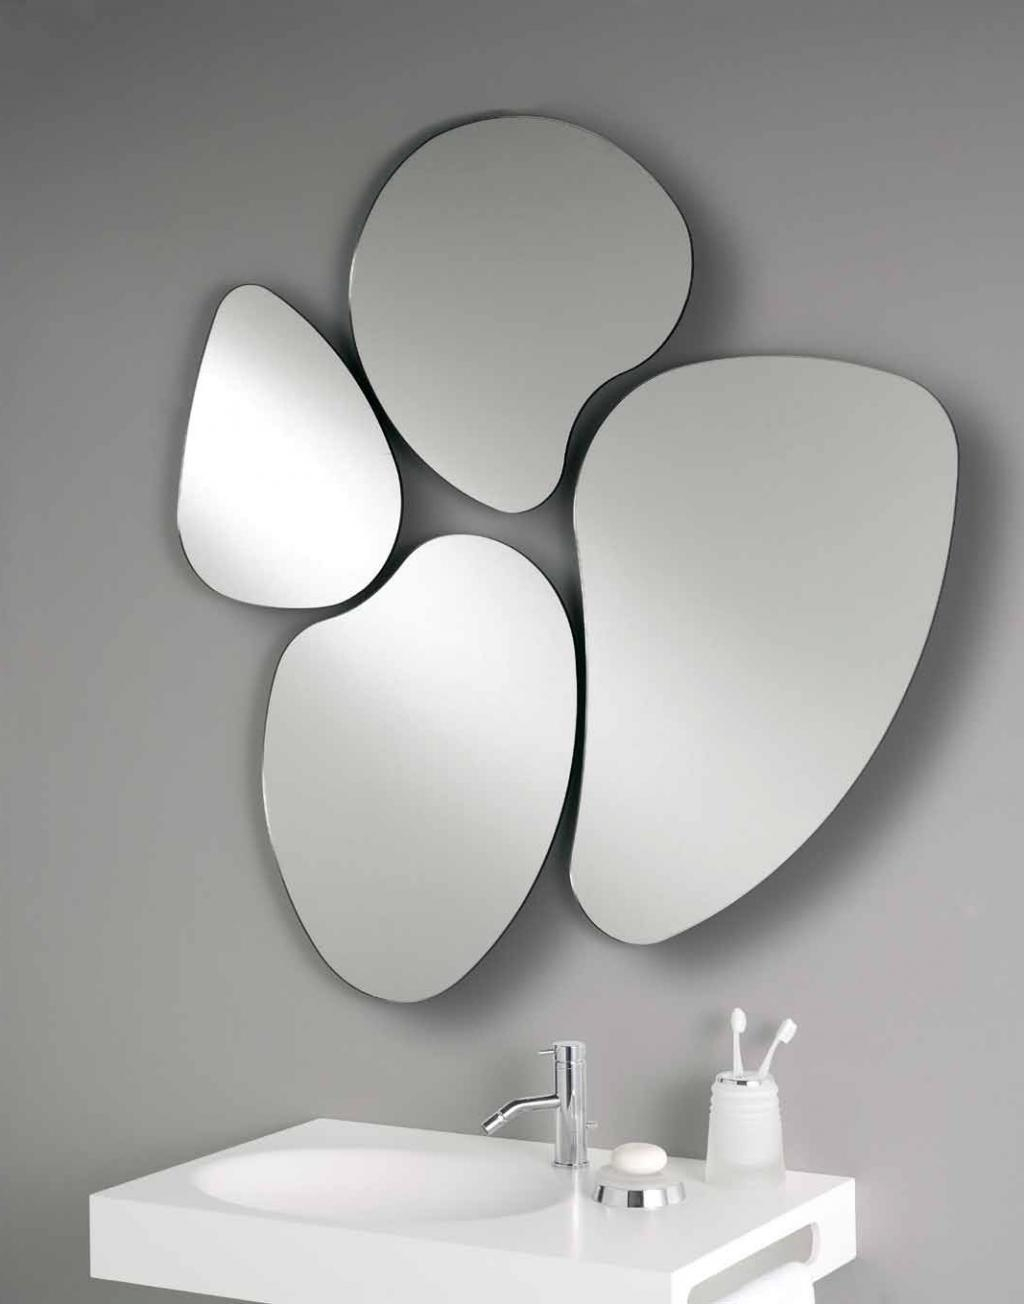 20 Gorgeous Diy Mirror Ideas Interesting Unique Mirror Ideas With Regard To Unusual Shaped Mirrors (Image 1 of 15)